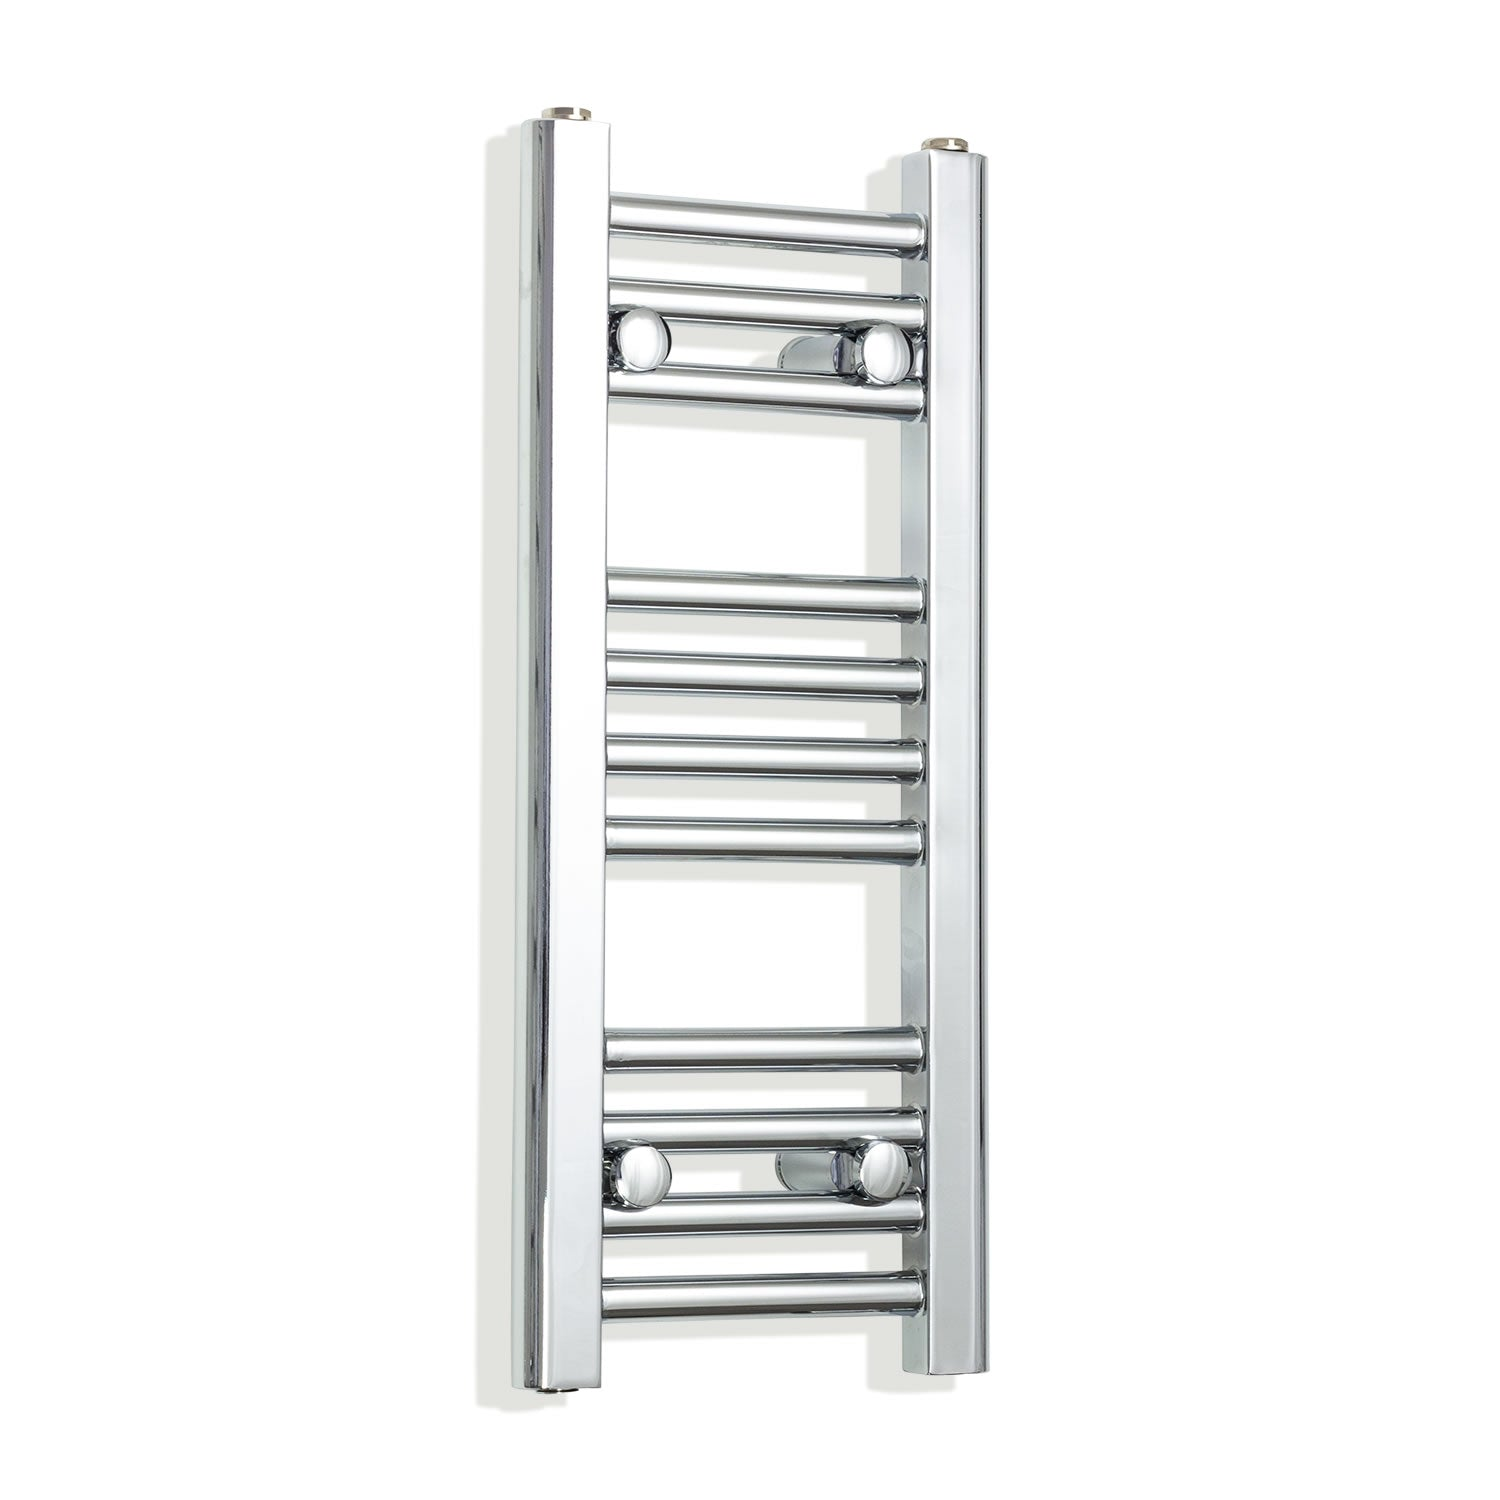 250mm Wide 600mm High Chrome Towel Rail Radiator